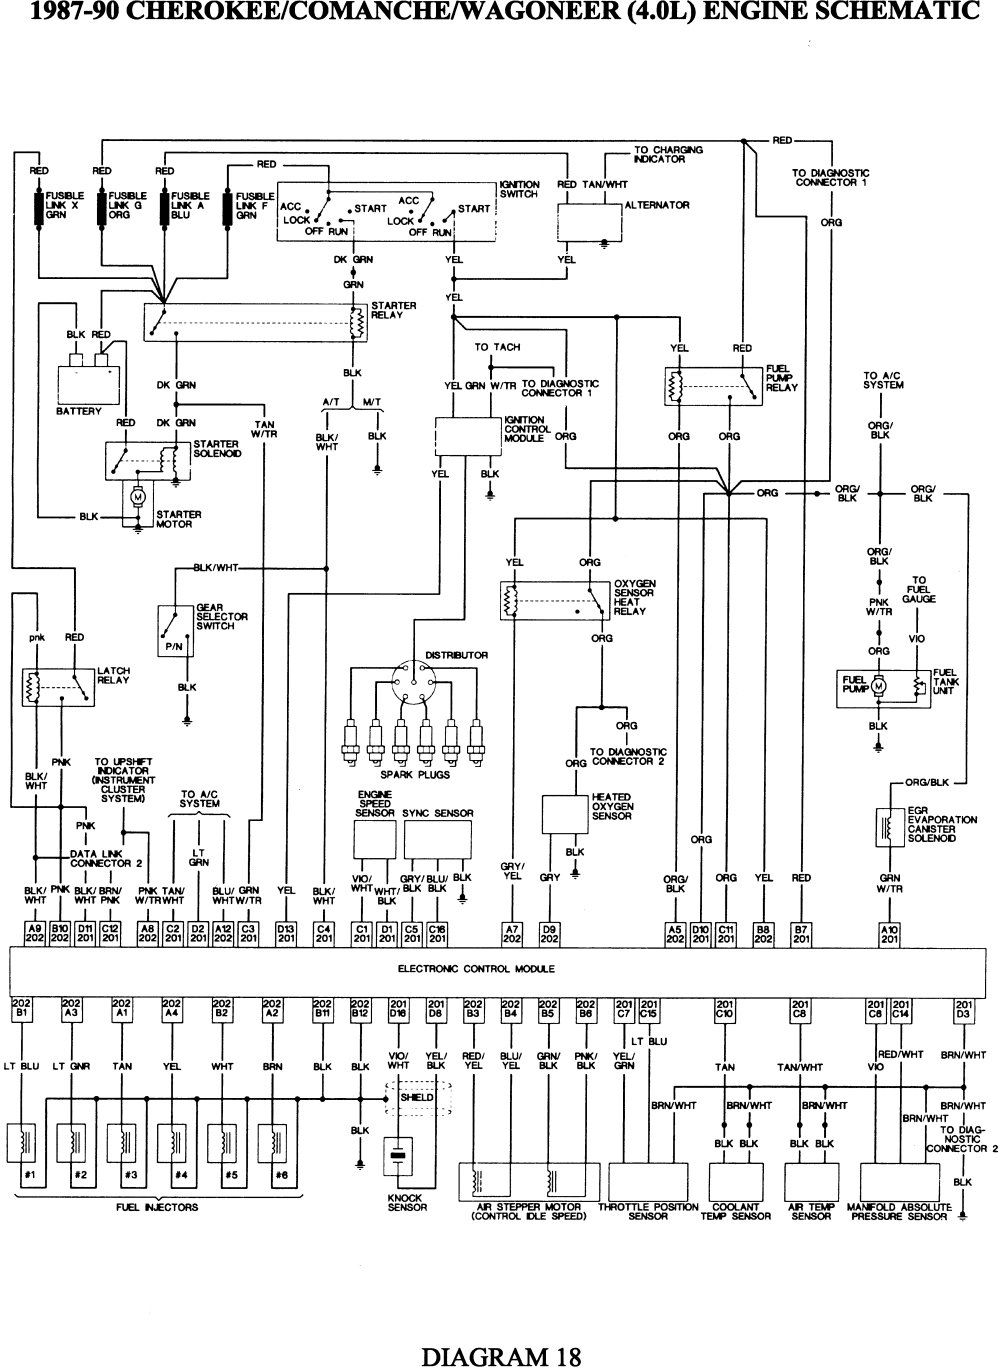 small resolution of 1997 jeep wrangler electrical diagram wiring diagram user 1997 jeep wrangler alternator diagram on jeep wrangler electrical